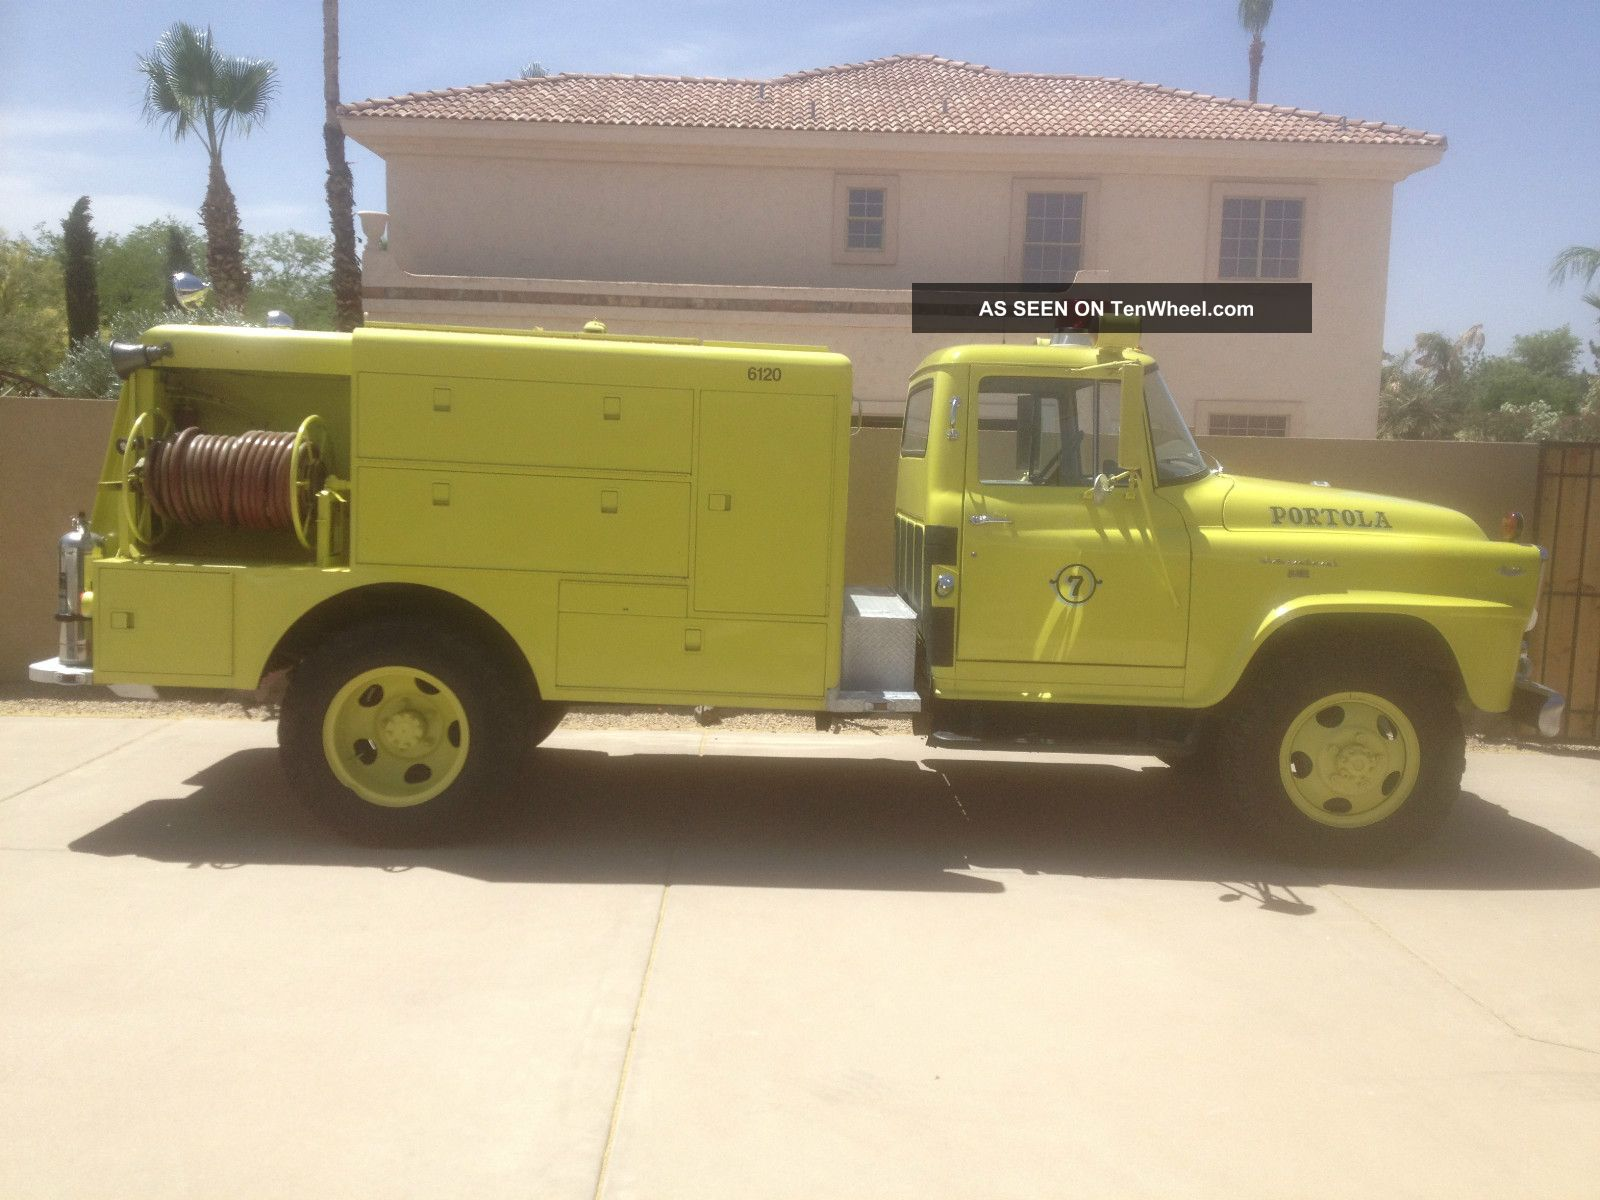 1962 International Harvester B160 Brush Attack Pumper Fire Truck Awd 4 X 4 Other photo